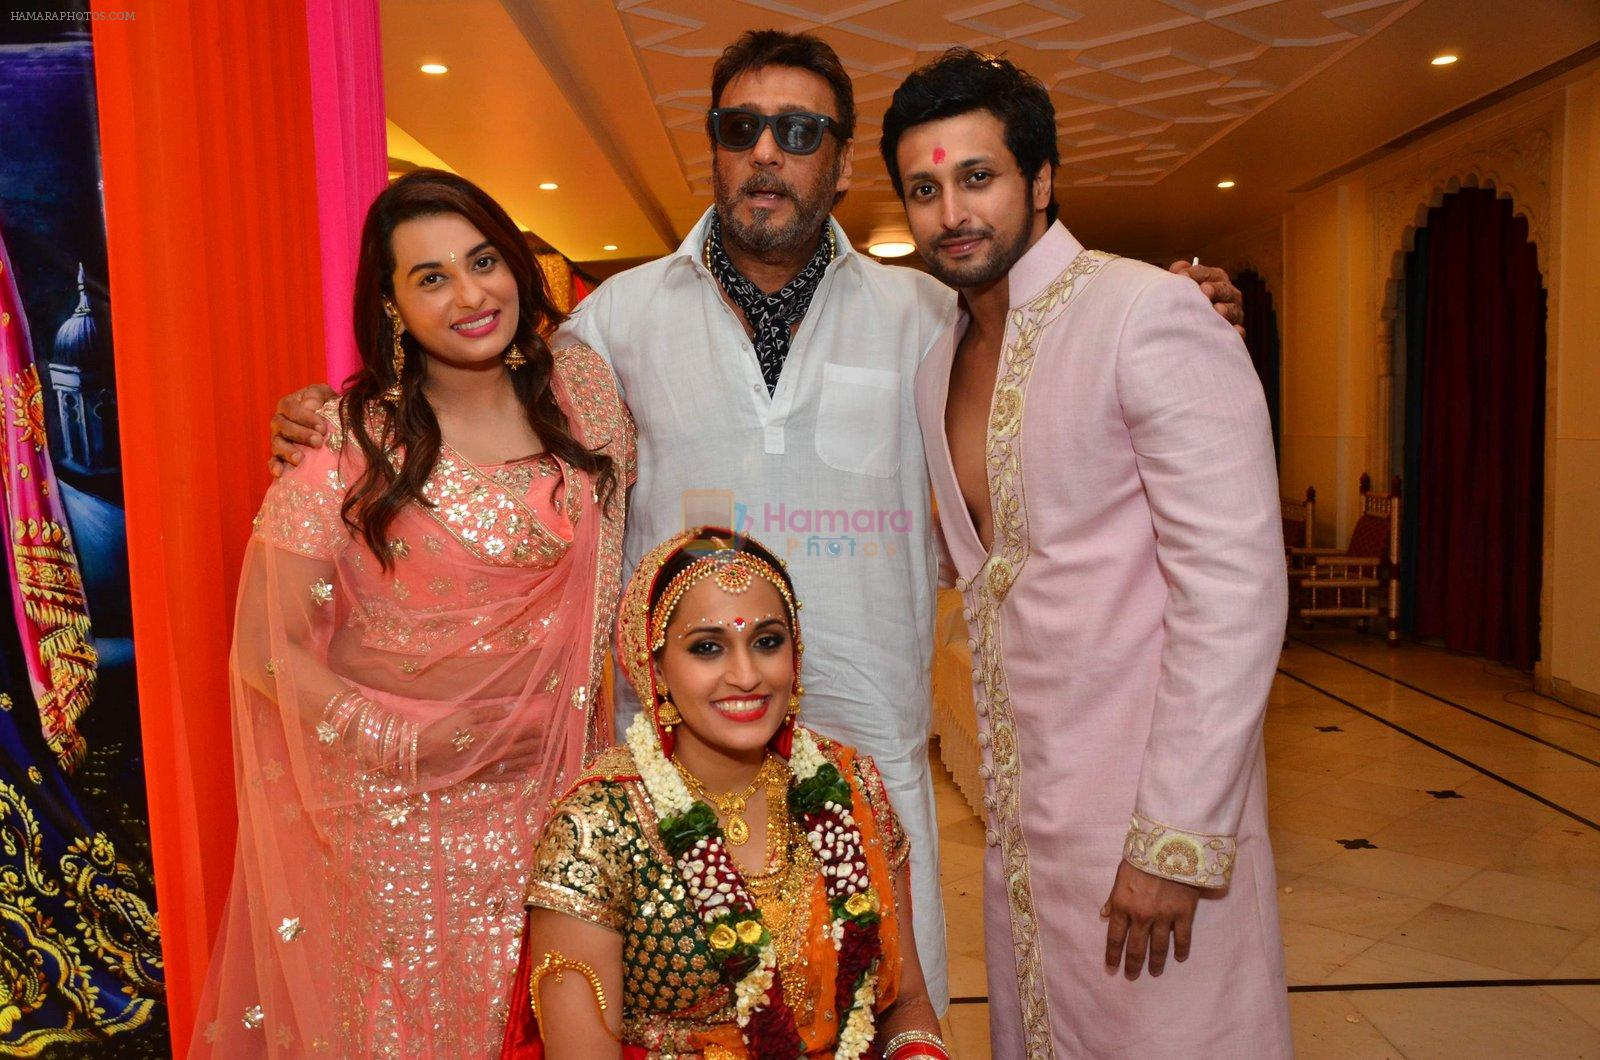 Jackie Shroff at singer Shweta Pandit's wedding with Italian boy friend Ivano Fucci on 2nd Sept 2016